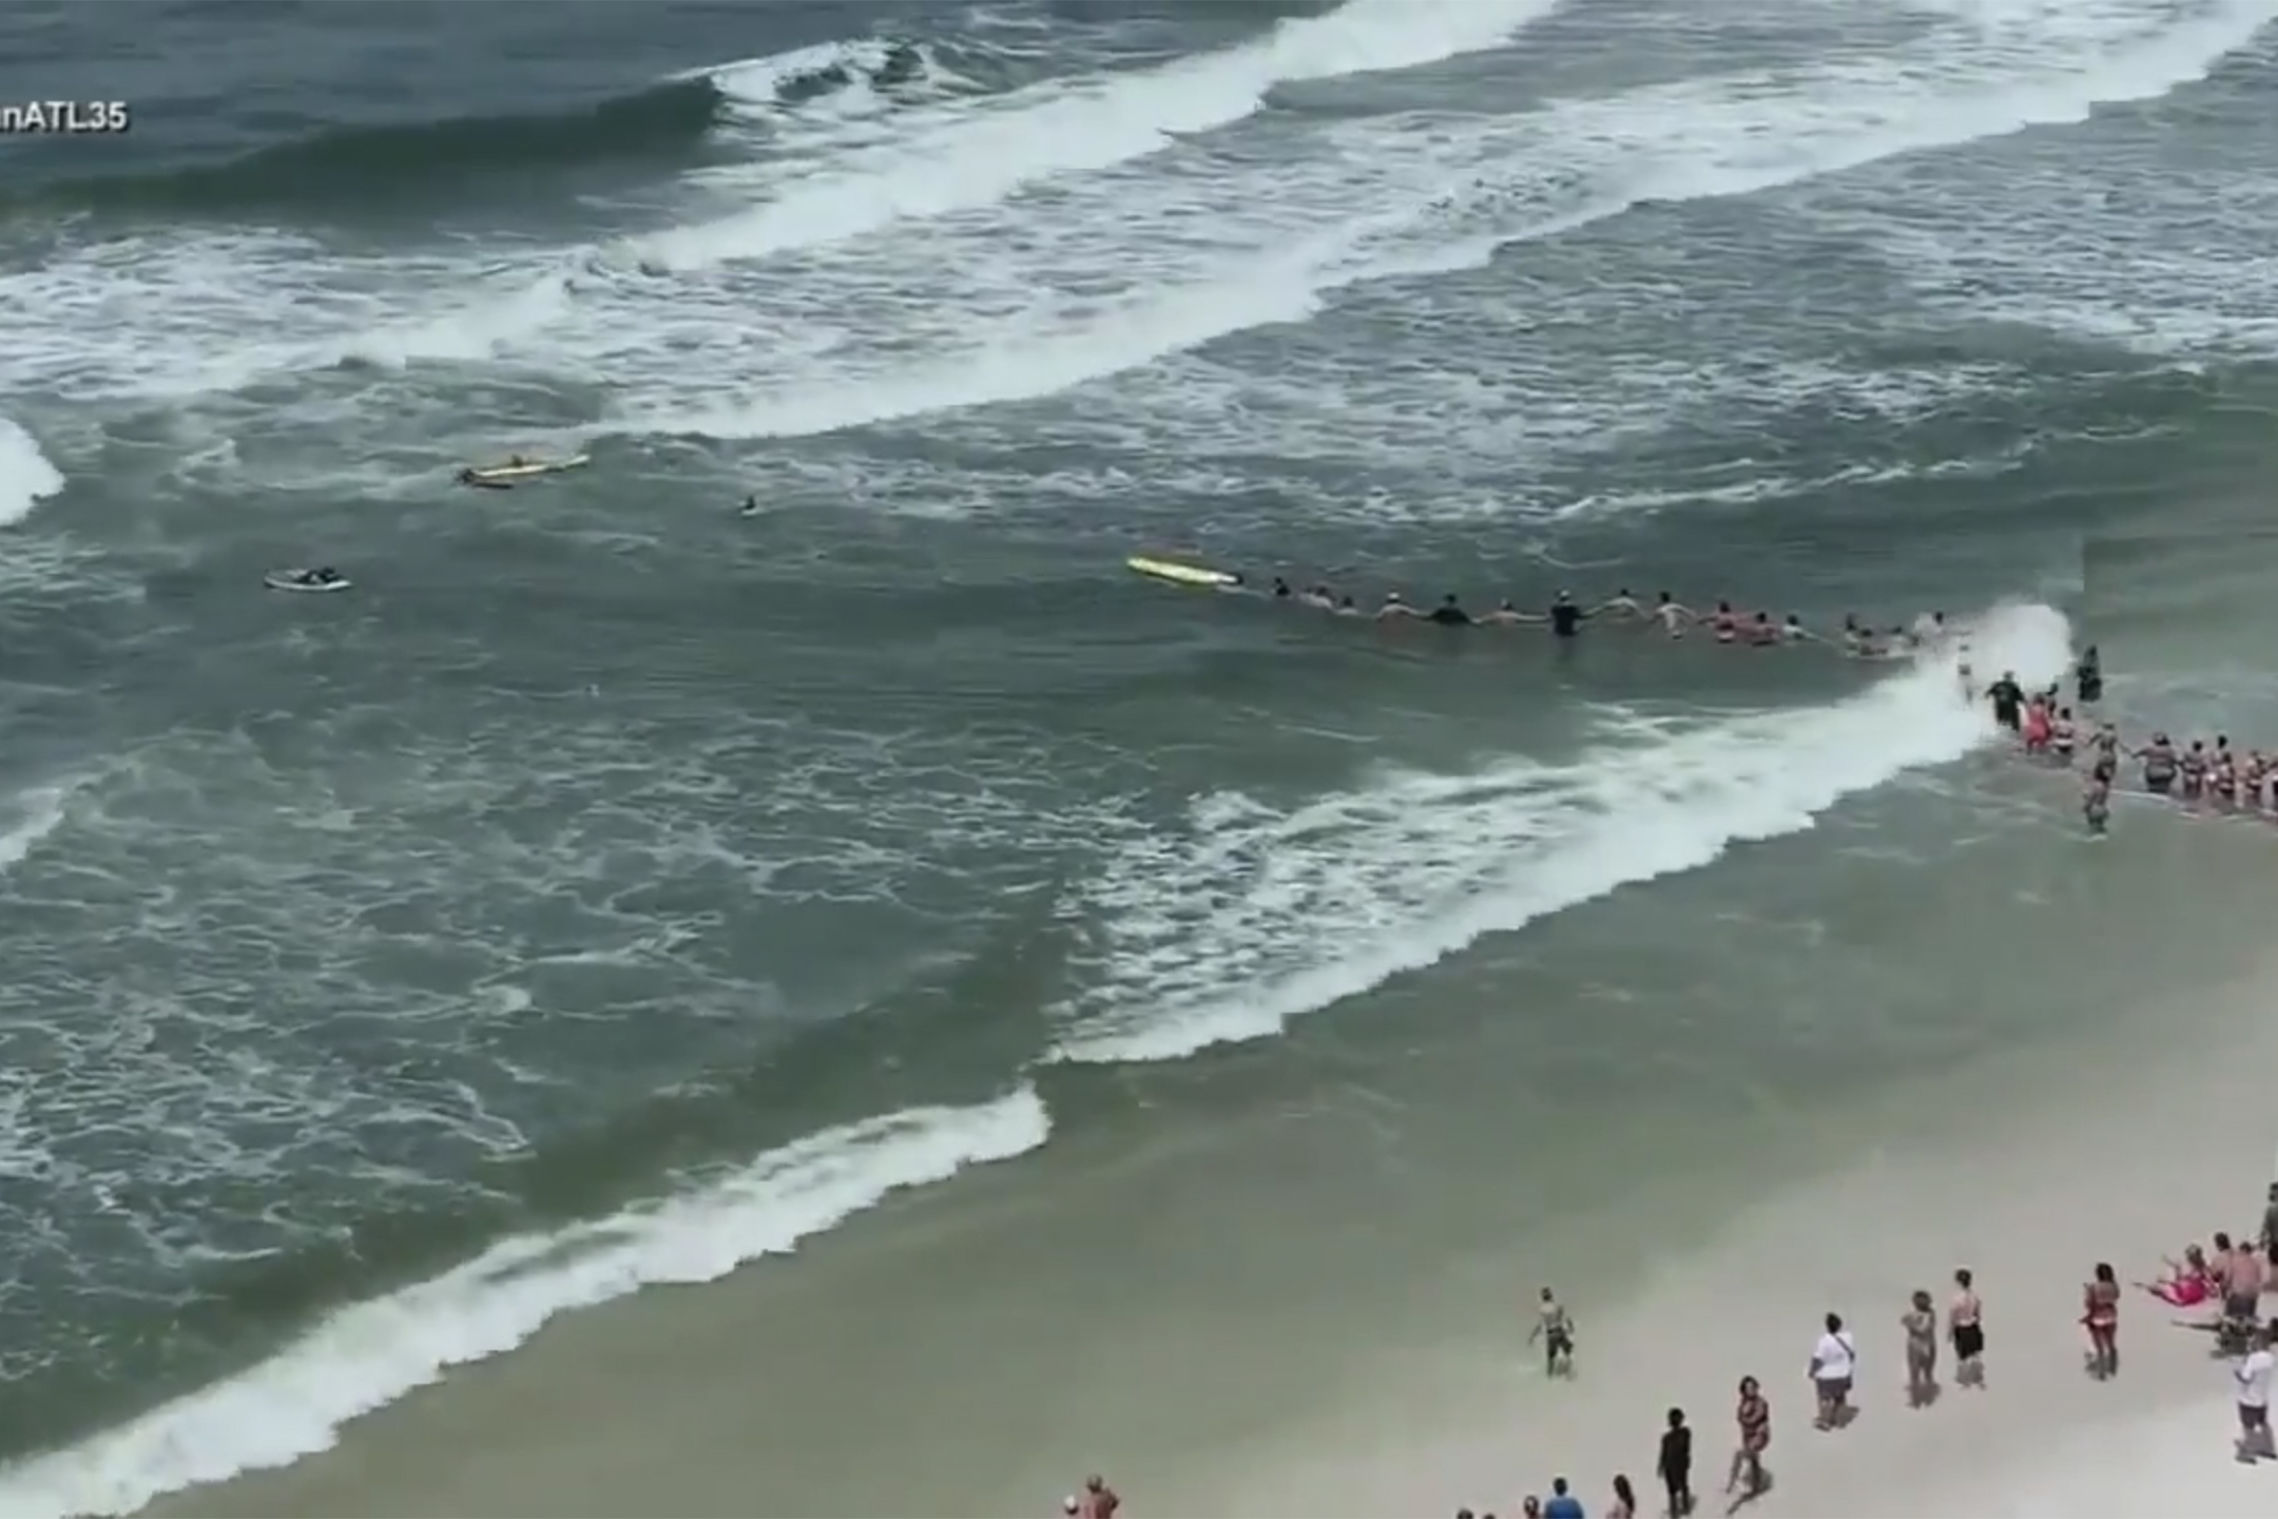 Good Samaritans Form Human Chain to Rescue Swimmers from Rip Current in Florida